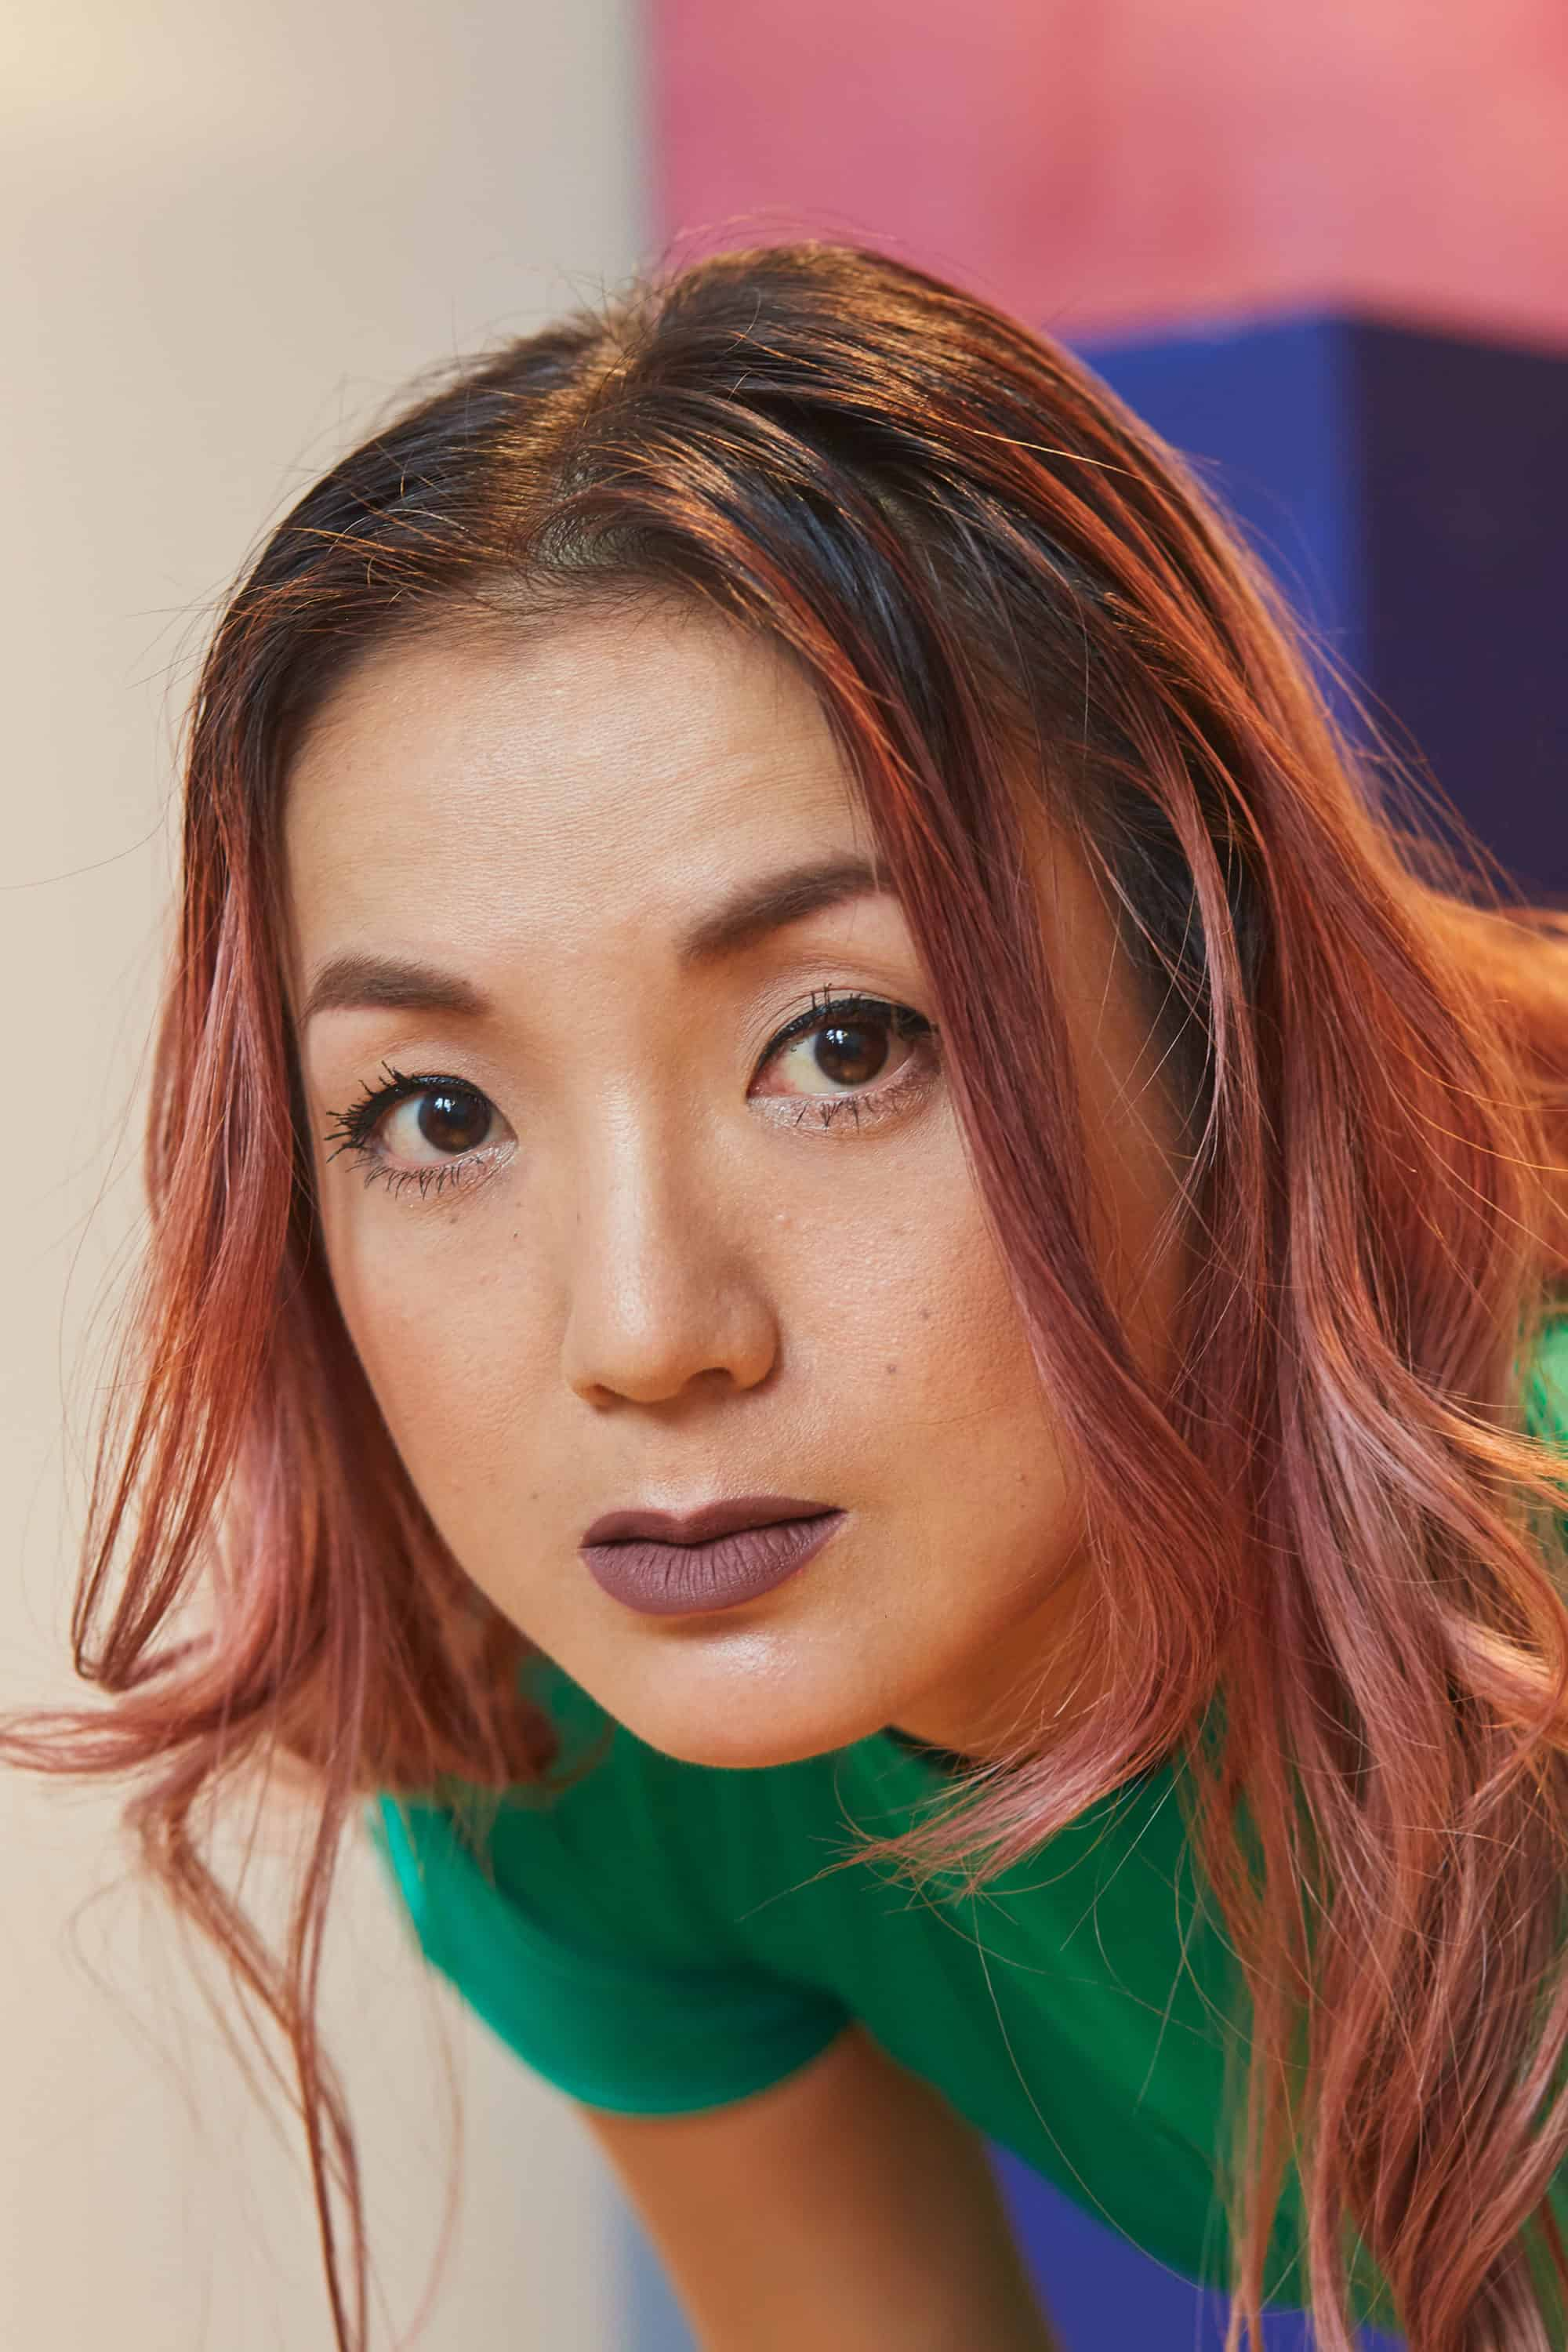 """Close-up portrait of Japanese woman, wearing green dress. Pink and purple highlights in her hair. Plinths in the background."""